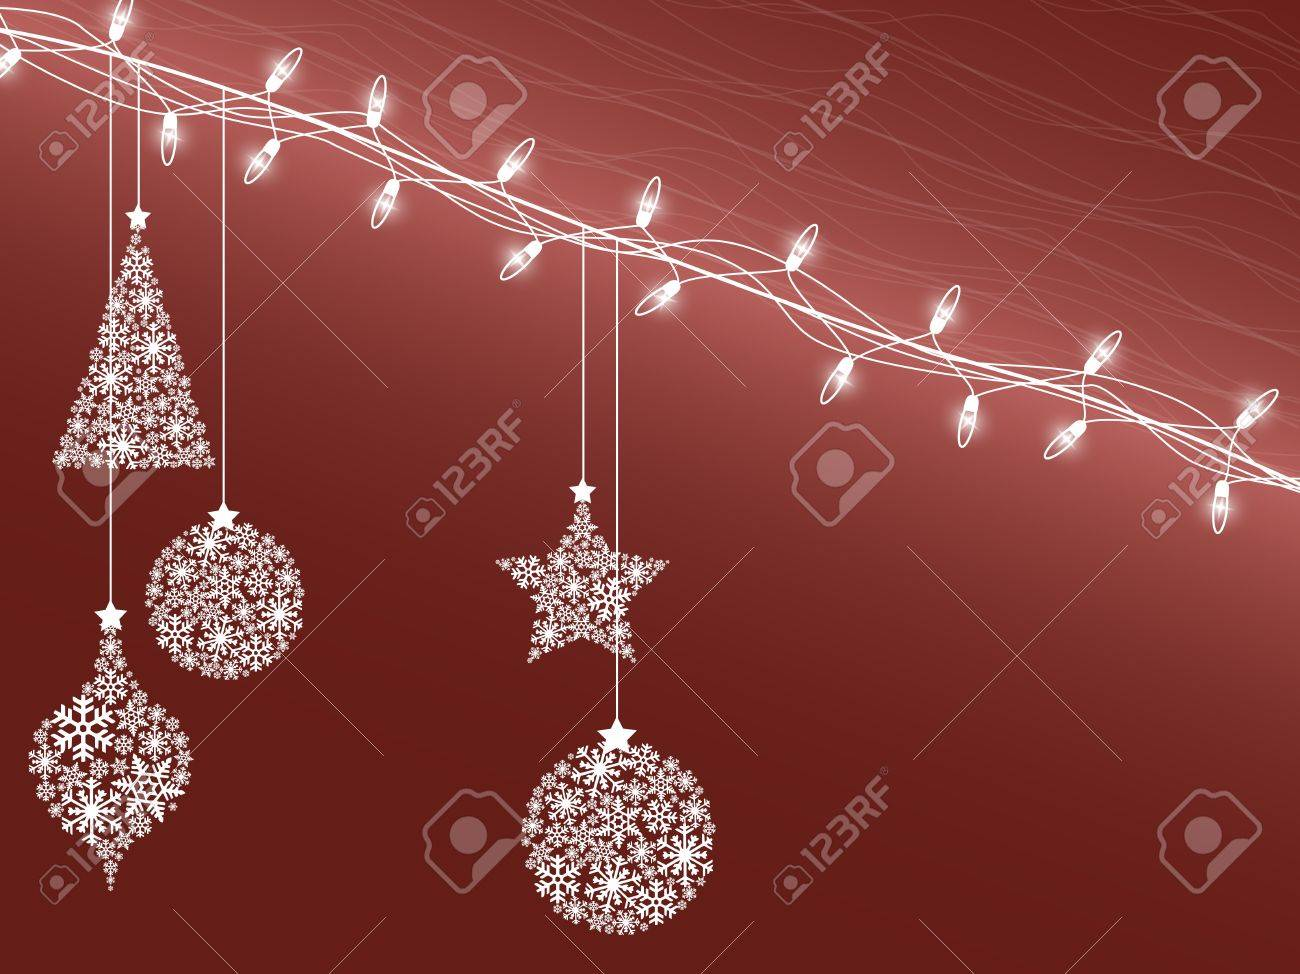 Background of Christmas lights Stock Vector - 10953781